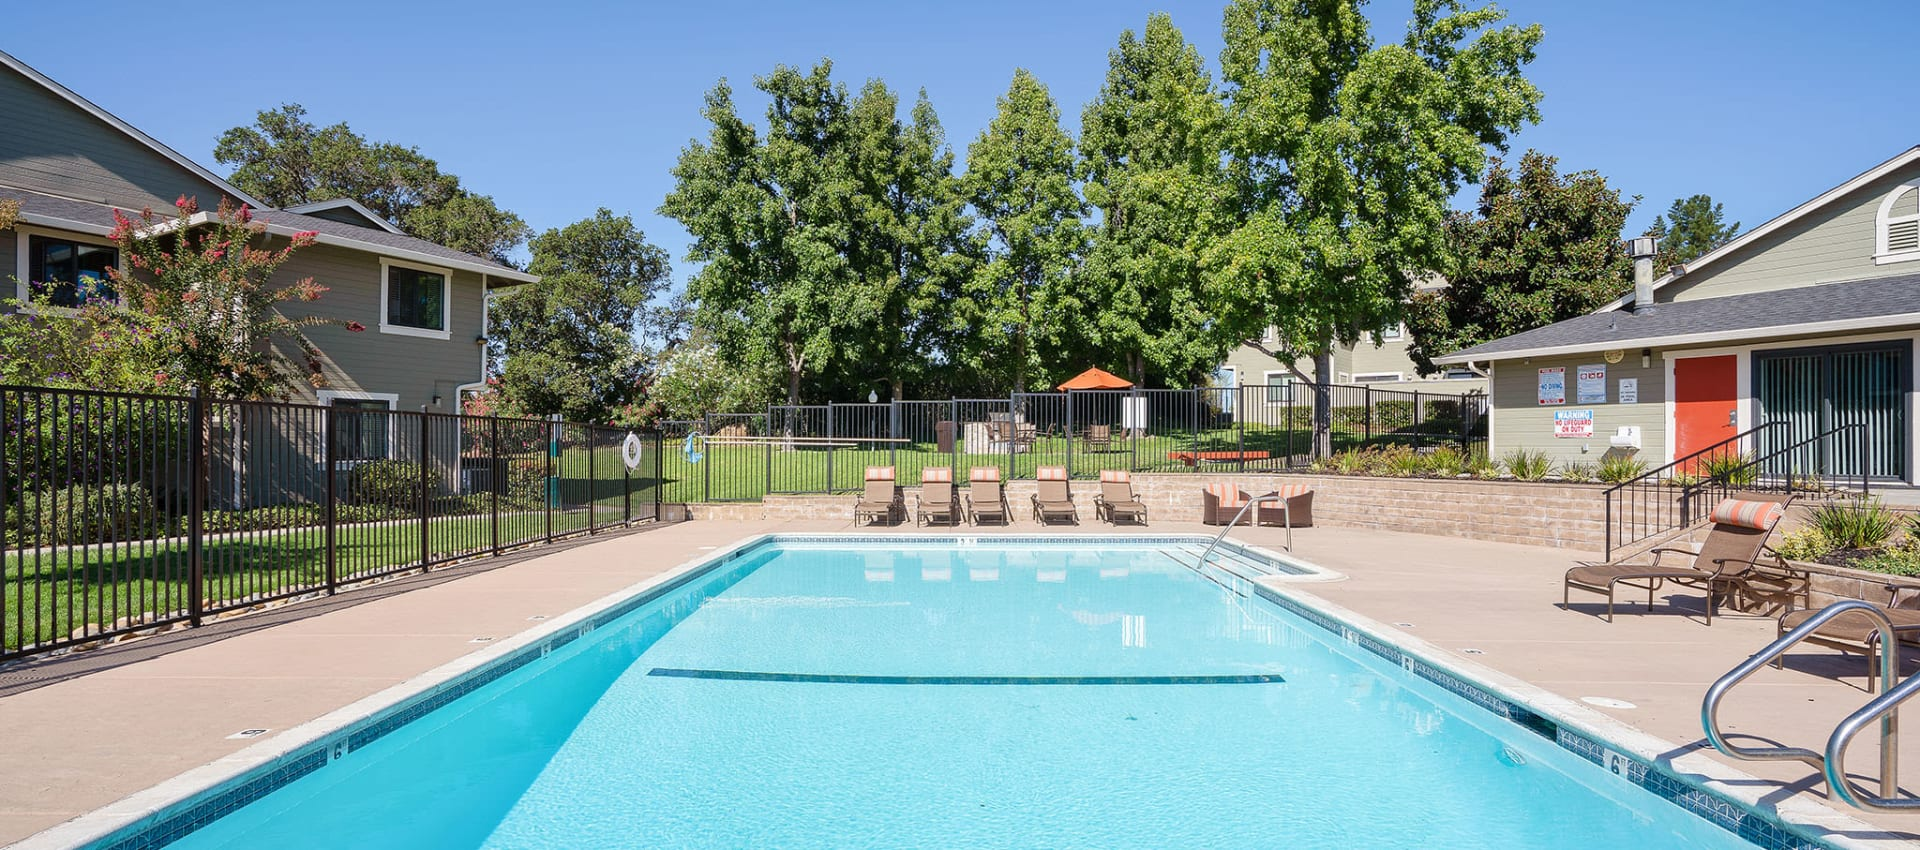 Large swimming pool at Ridgecrest Apartment Homes in Martinez, California